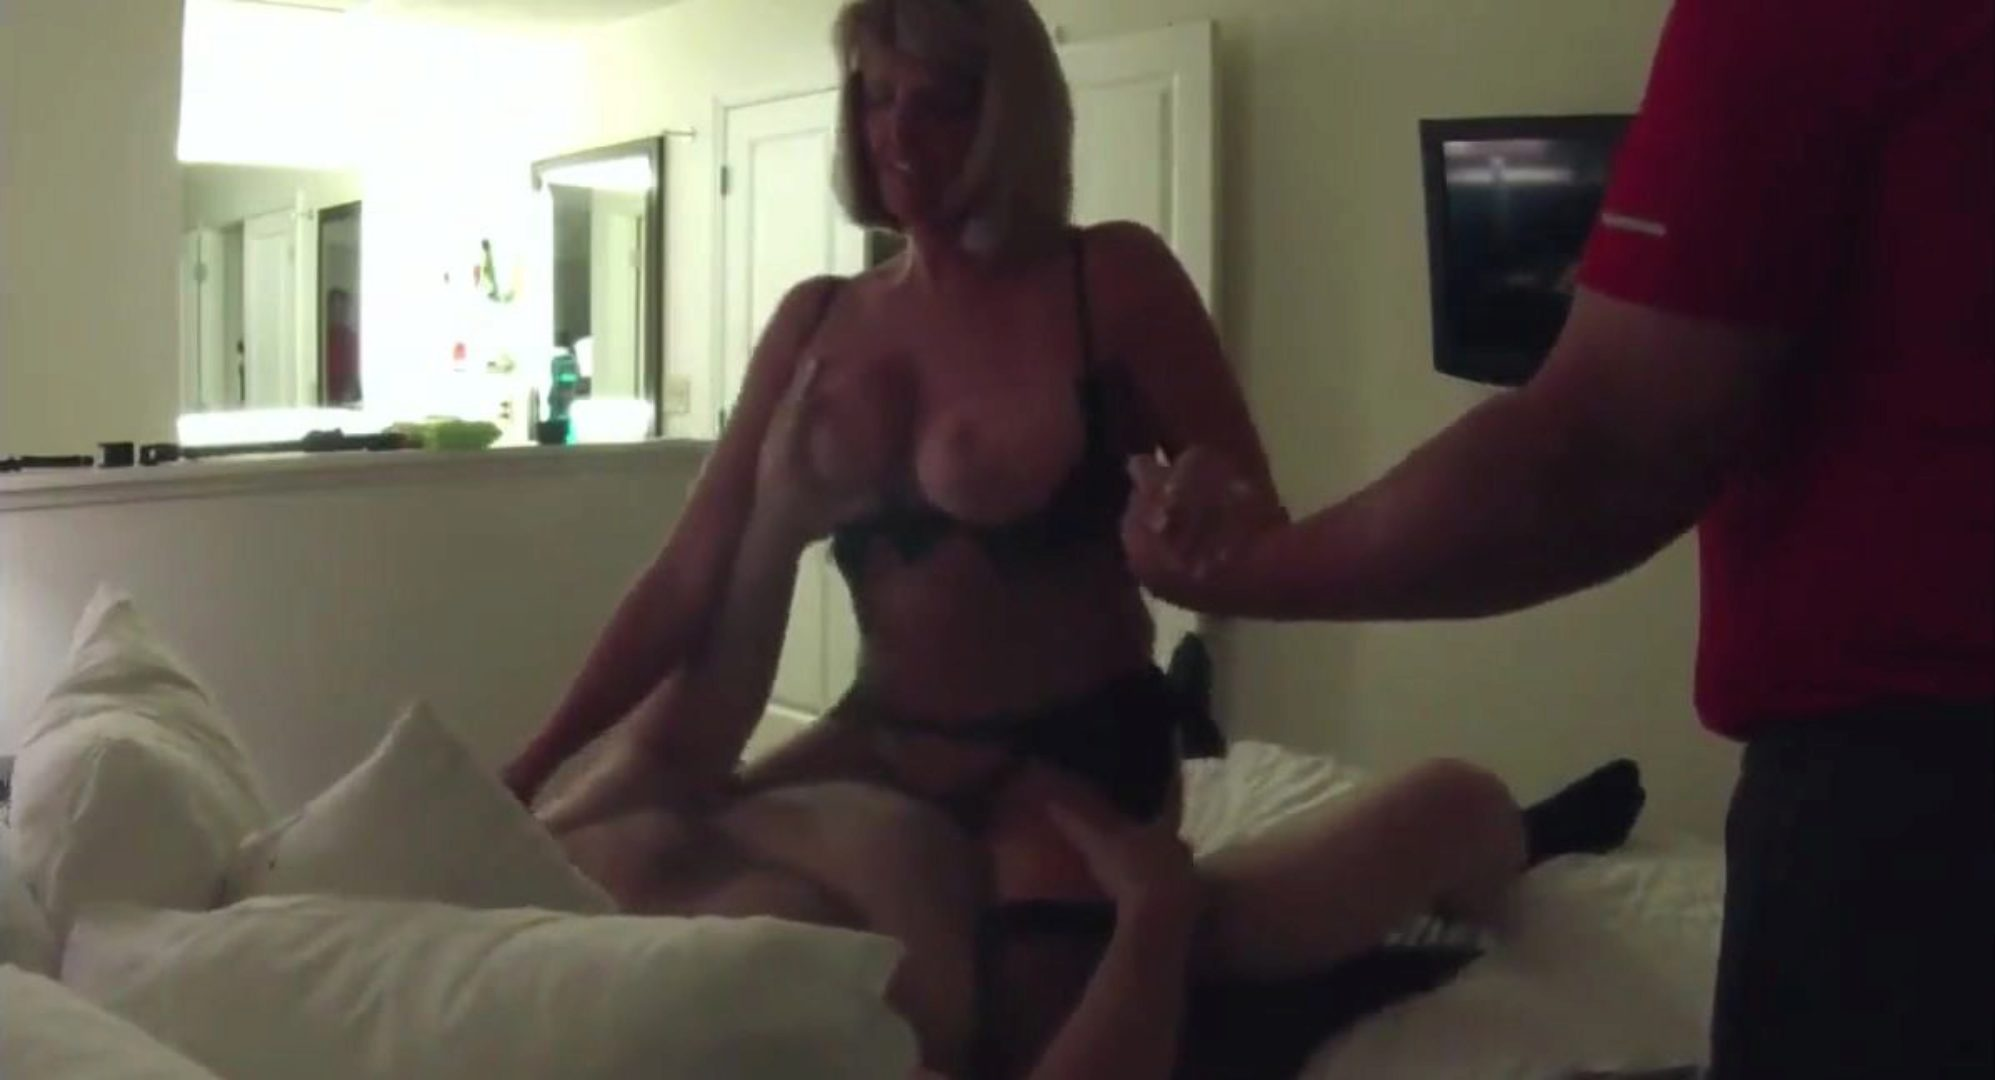 Letting Wife Fuck Friend She Wanted For Years For 50th Bday